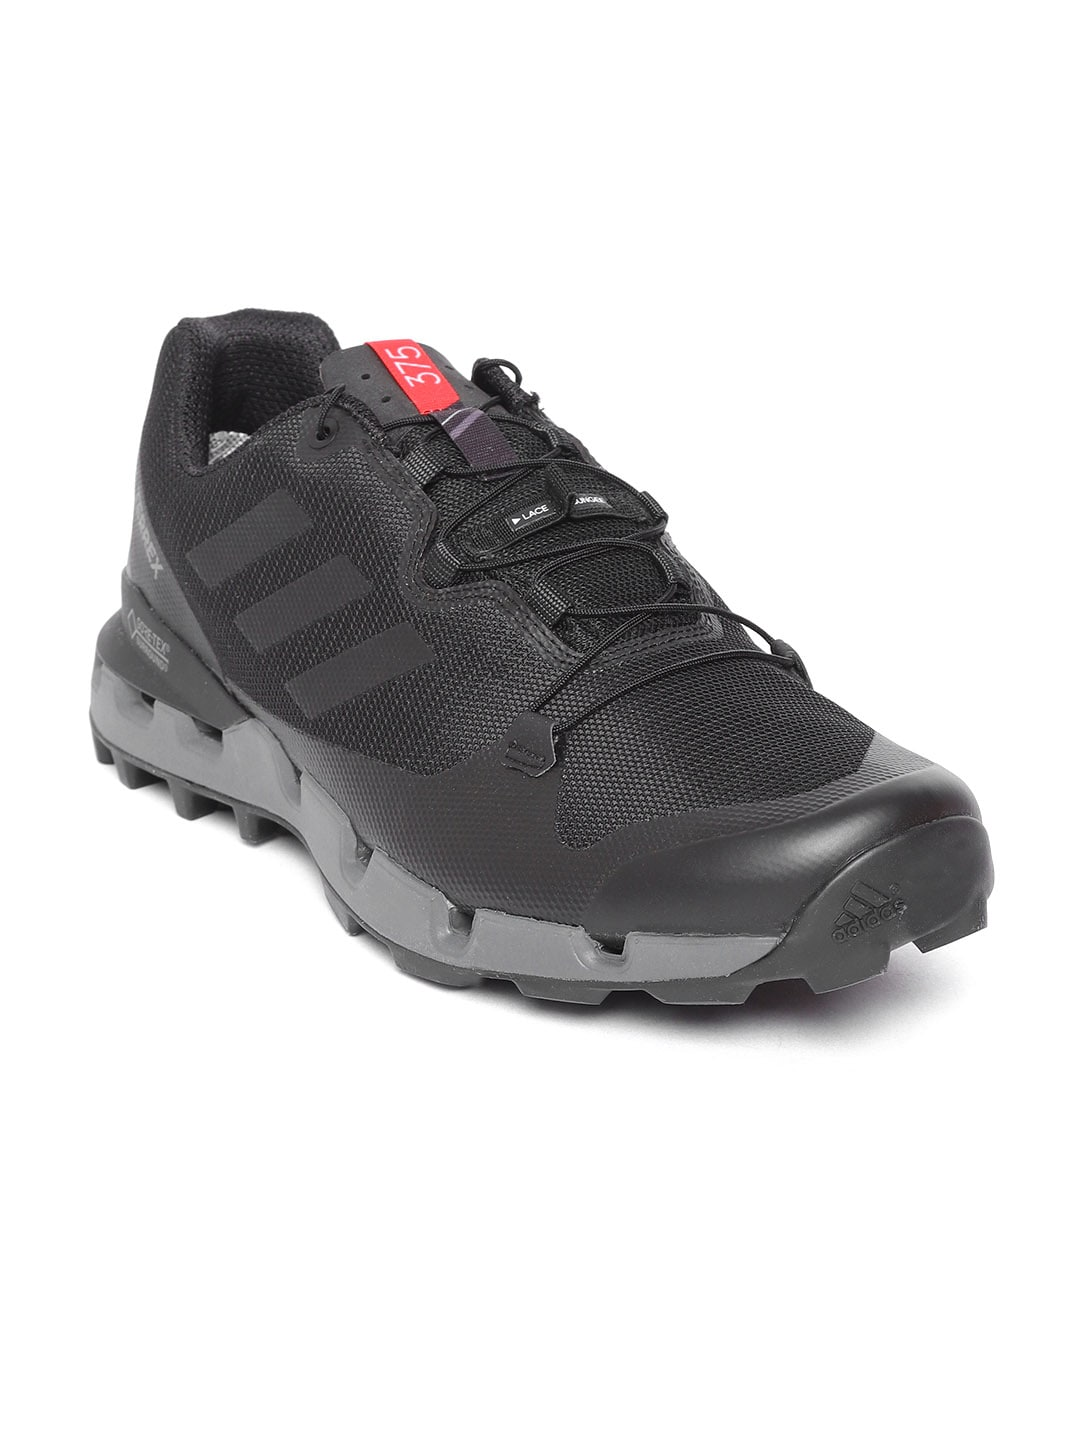 f54b48abe Mens Adidas Shoes - Buy Adidas Shoes for Men Online in India